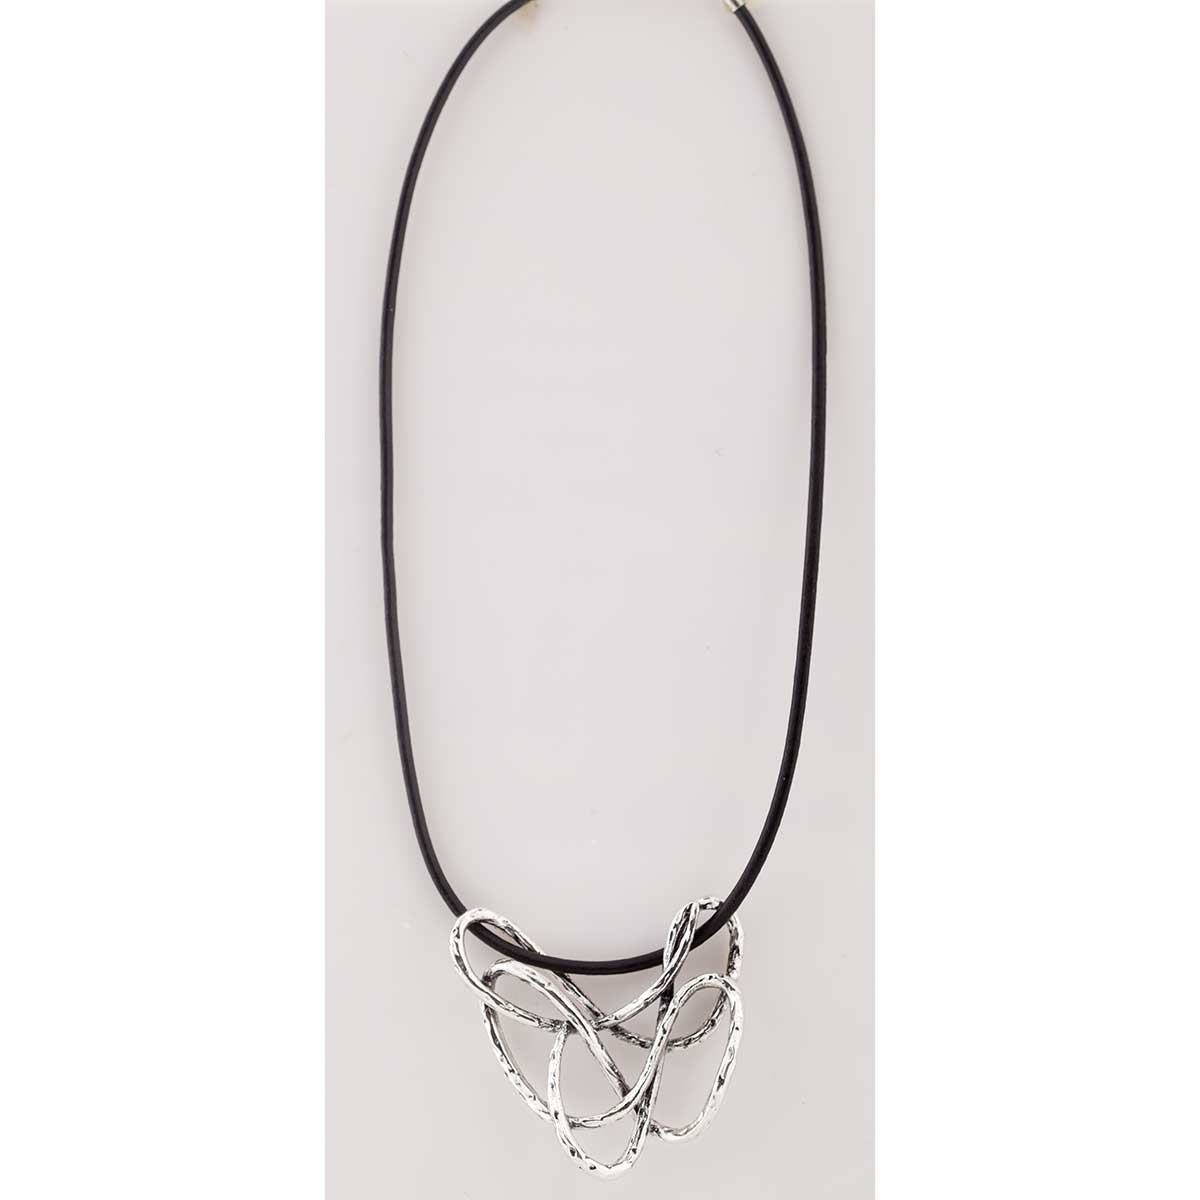 Silver Free-Form on Black Cord Necklace